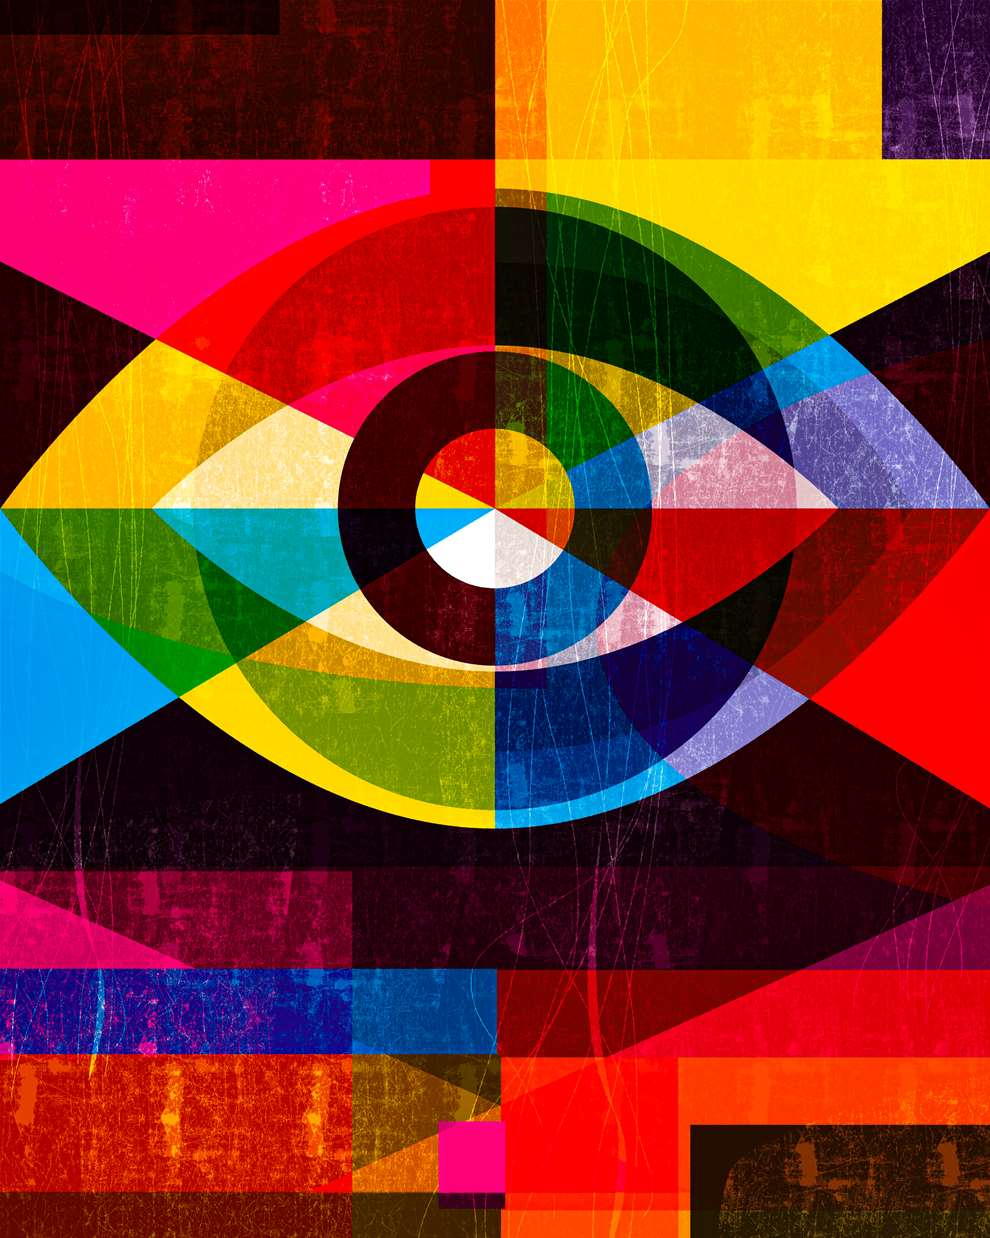 Paul Wearing, Digital textural bold illustration of an eye, with bright colours and overlapping shapes.